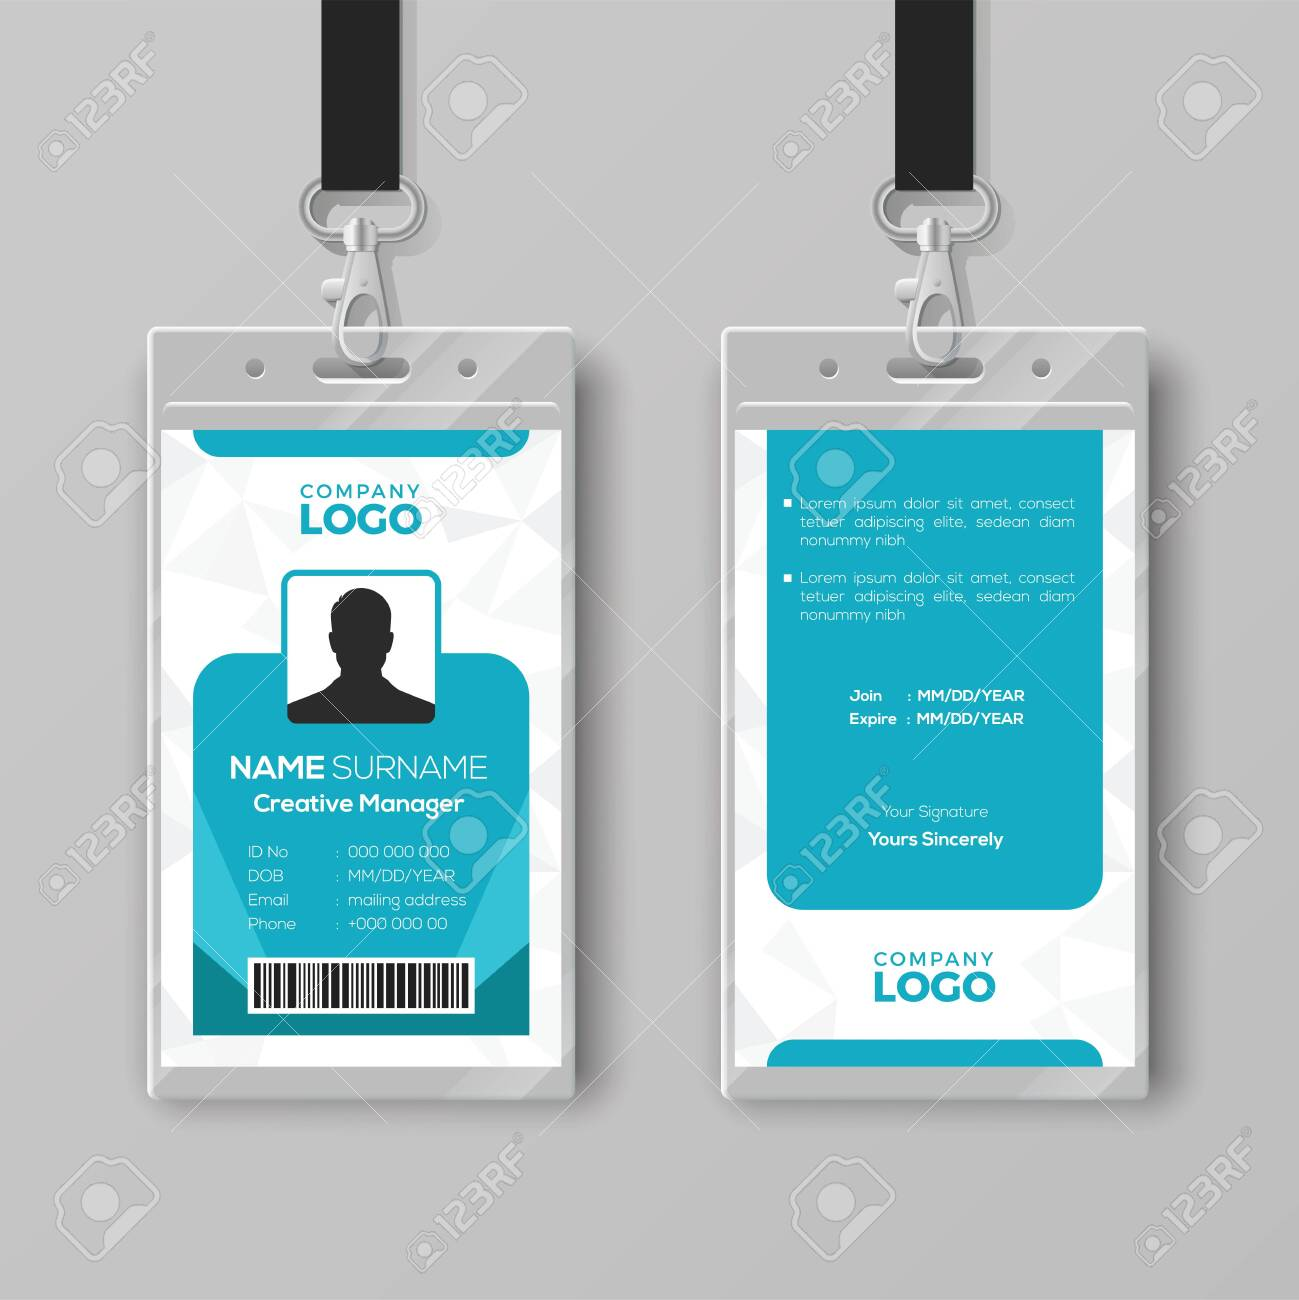 Corporate ID Card Design Template Royalty Free Cliparts, Vectors In Company Id Card Design Template